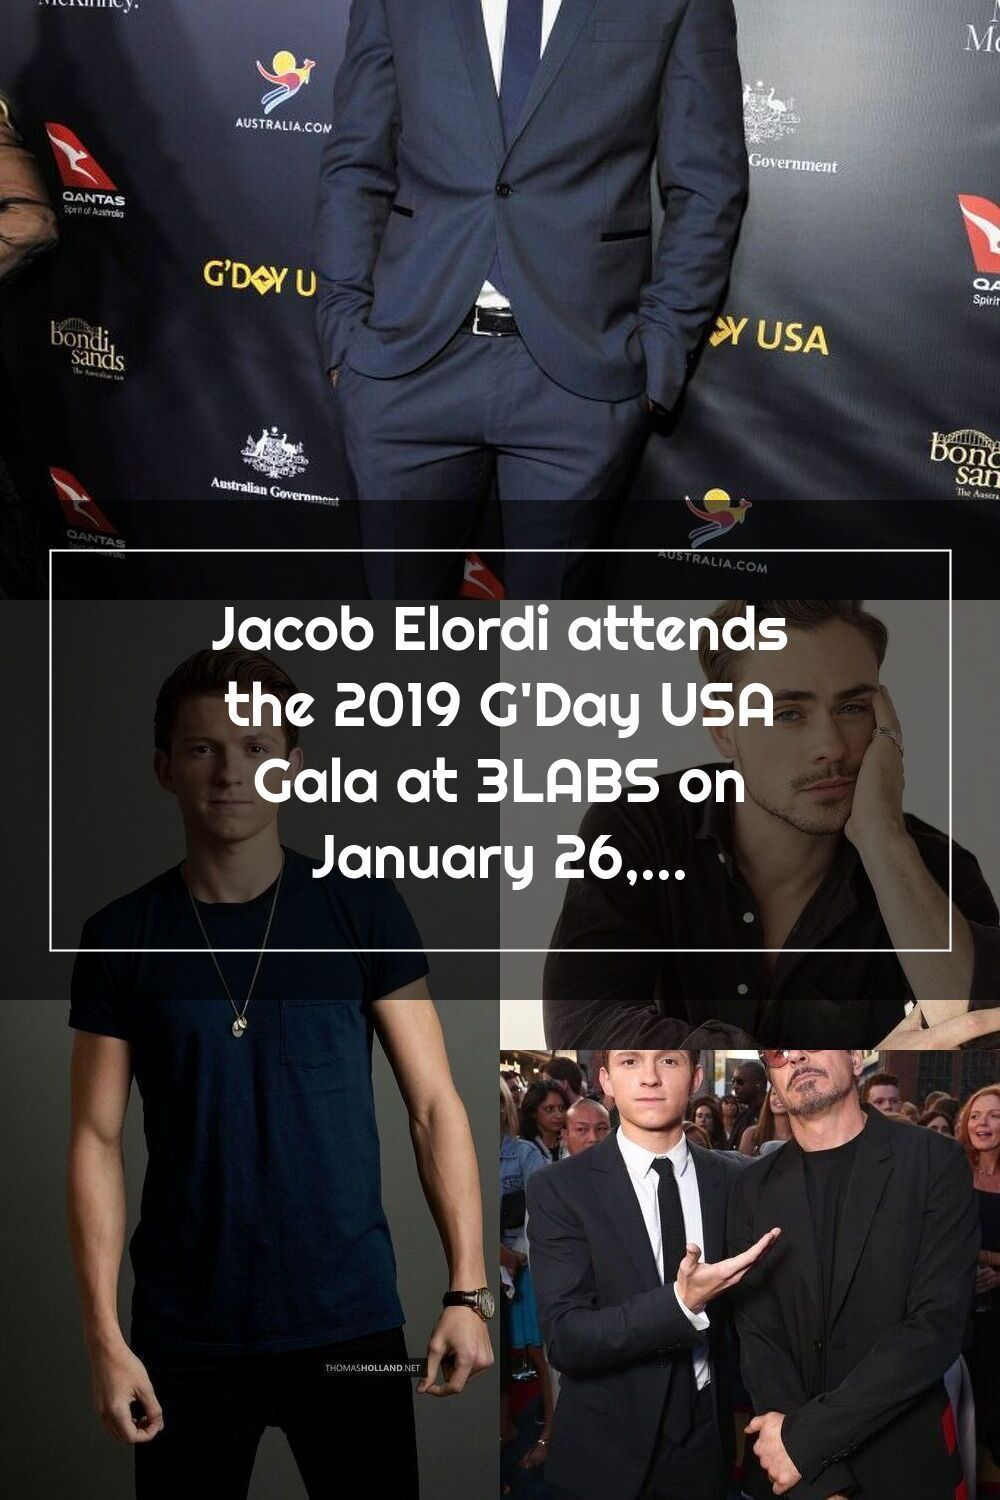 Culver City Ca January 26 Jacob Elordi Attends The 2019 G Day Usa Gala At 3labs On January 26 2019 In Culver City California Photo By John Sciulli Get 2020